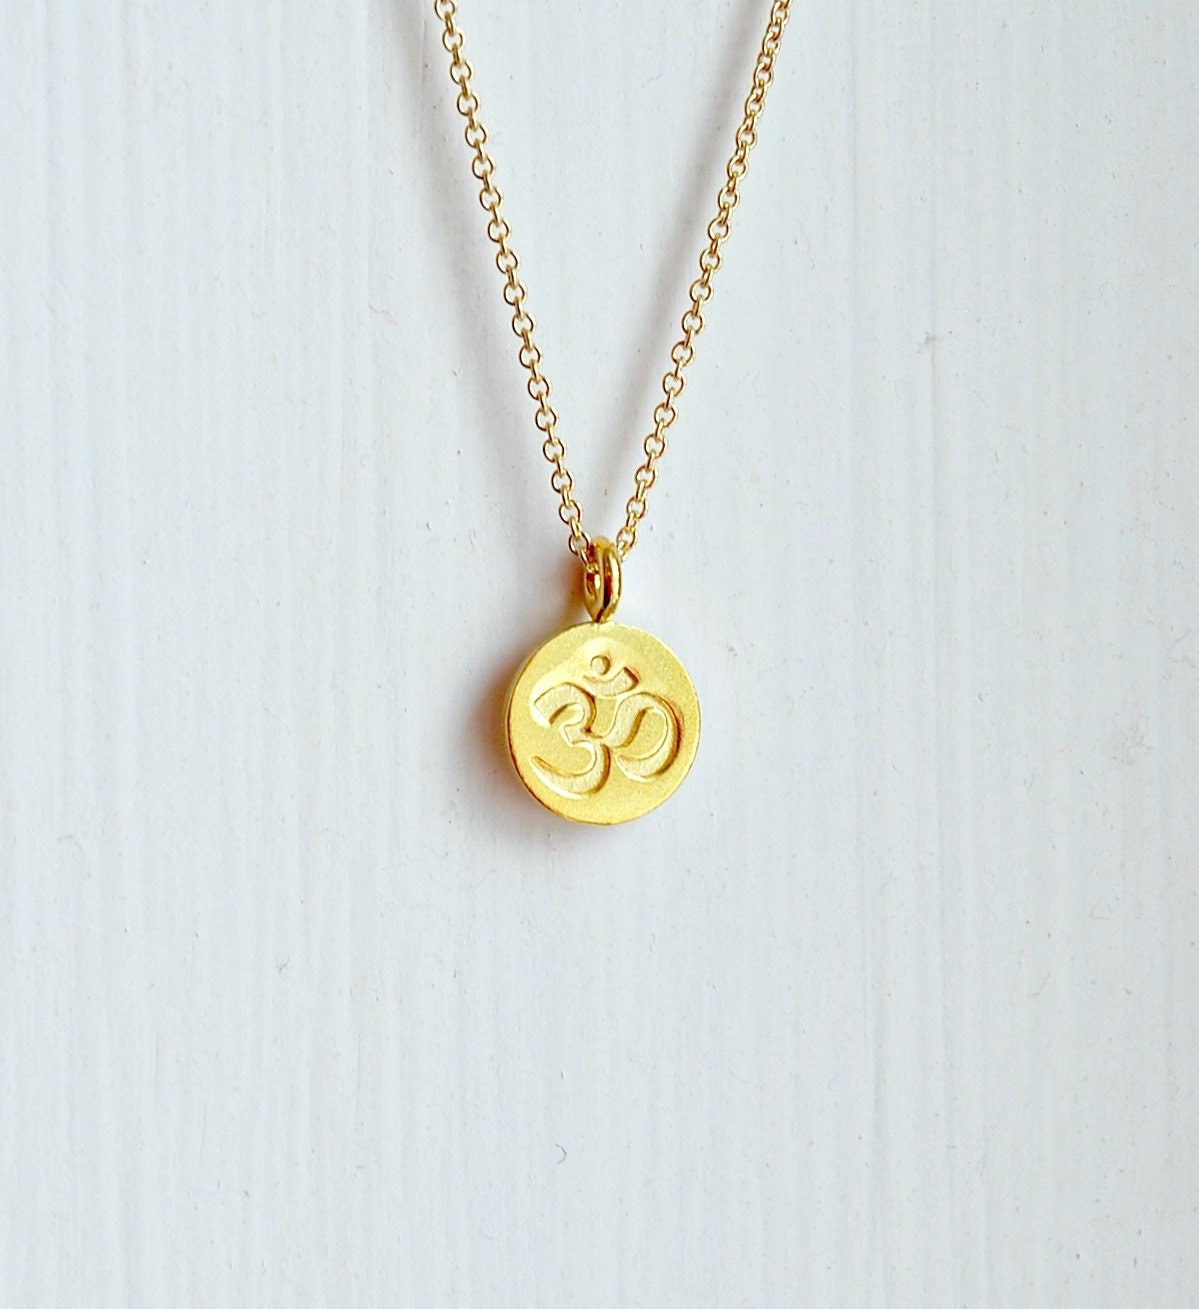 ohm necklace small om symbol pendant gold by